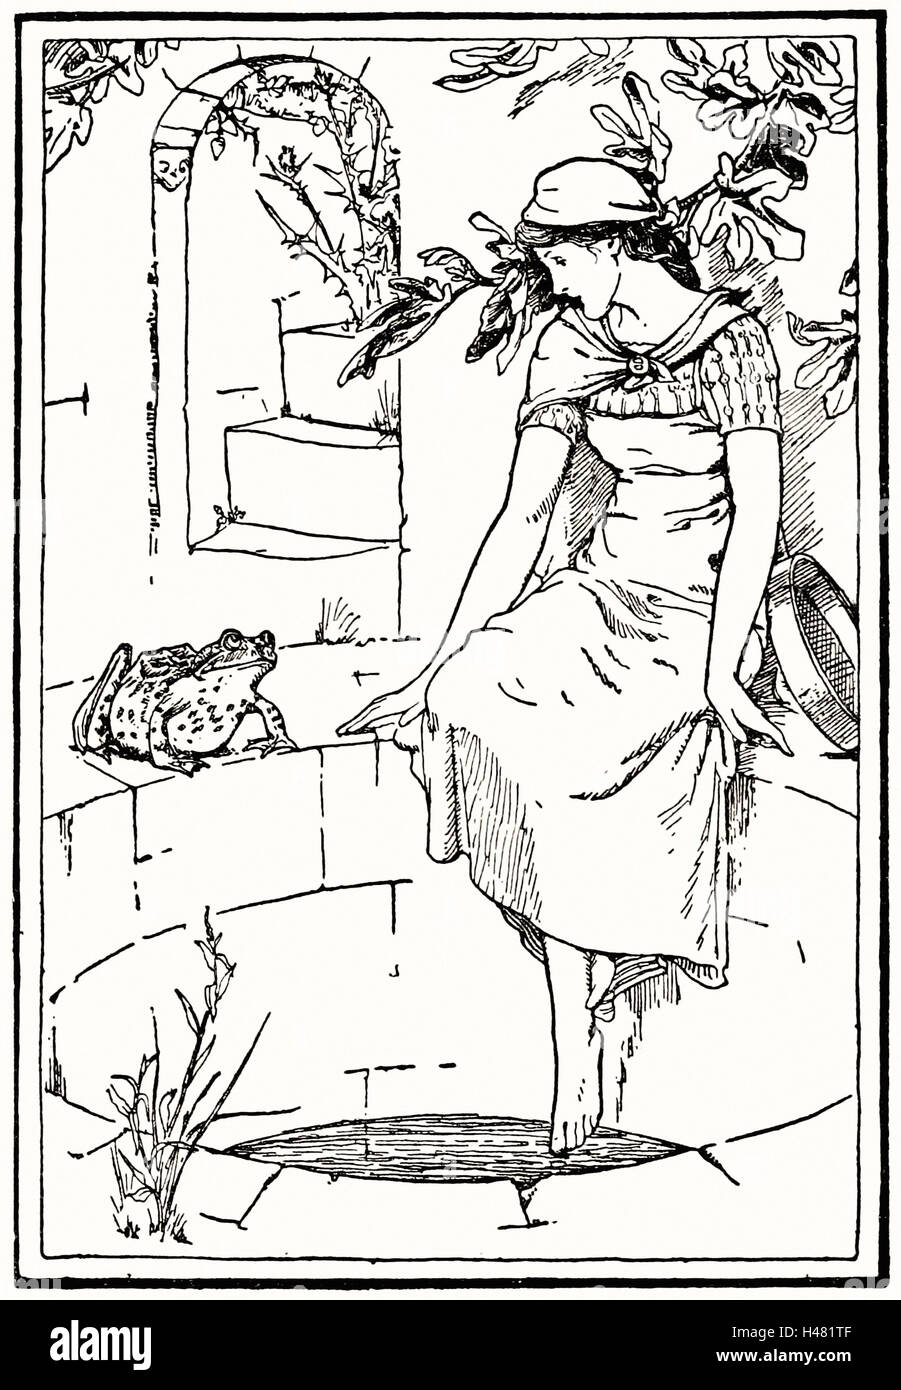 Page 227 illustration in English Fairy Tales - Stock Image